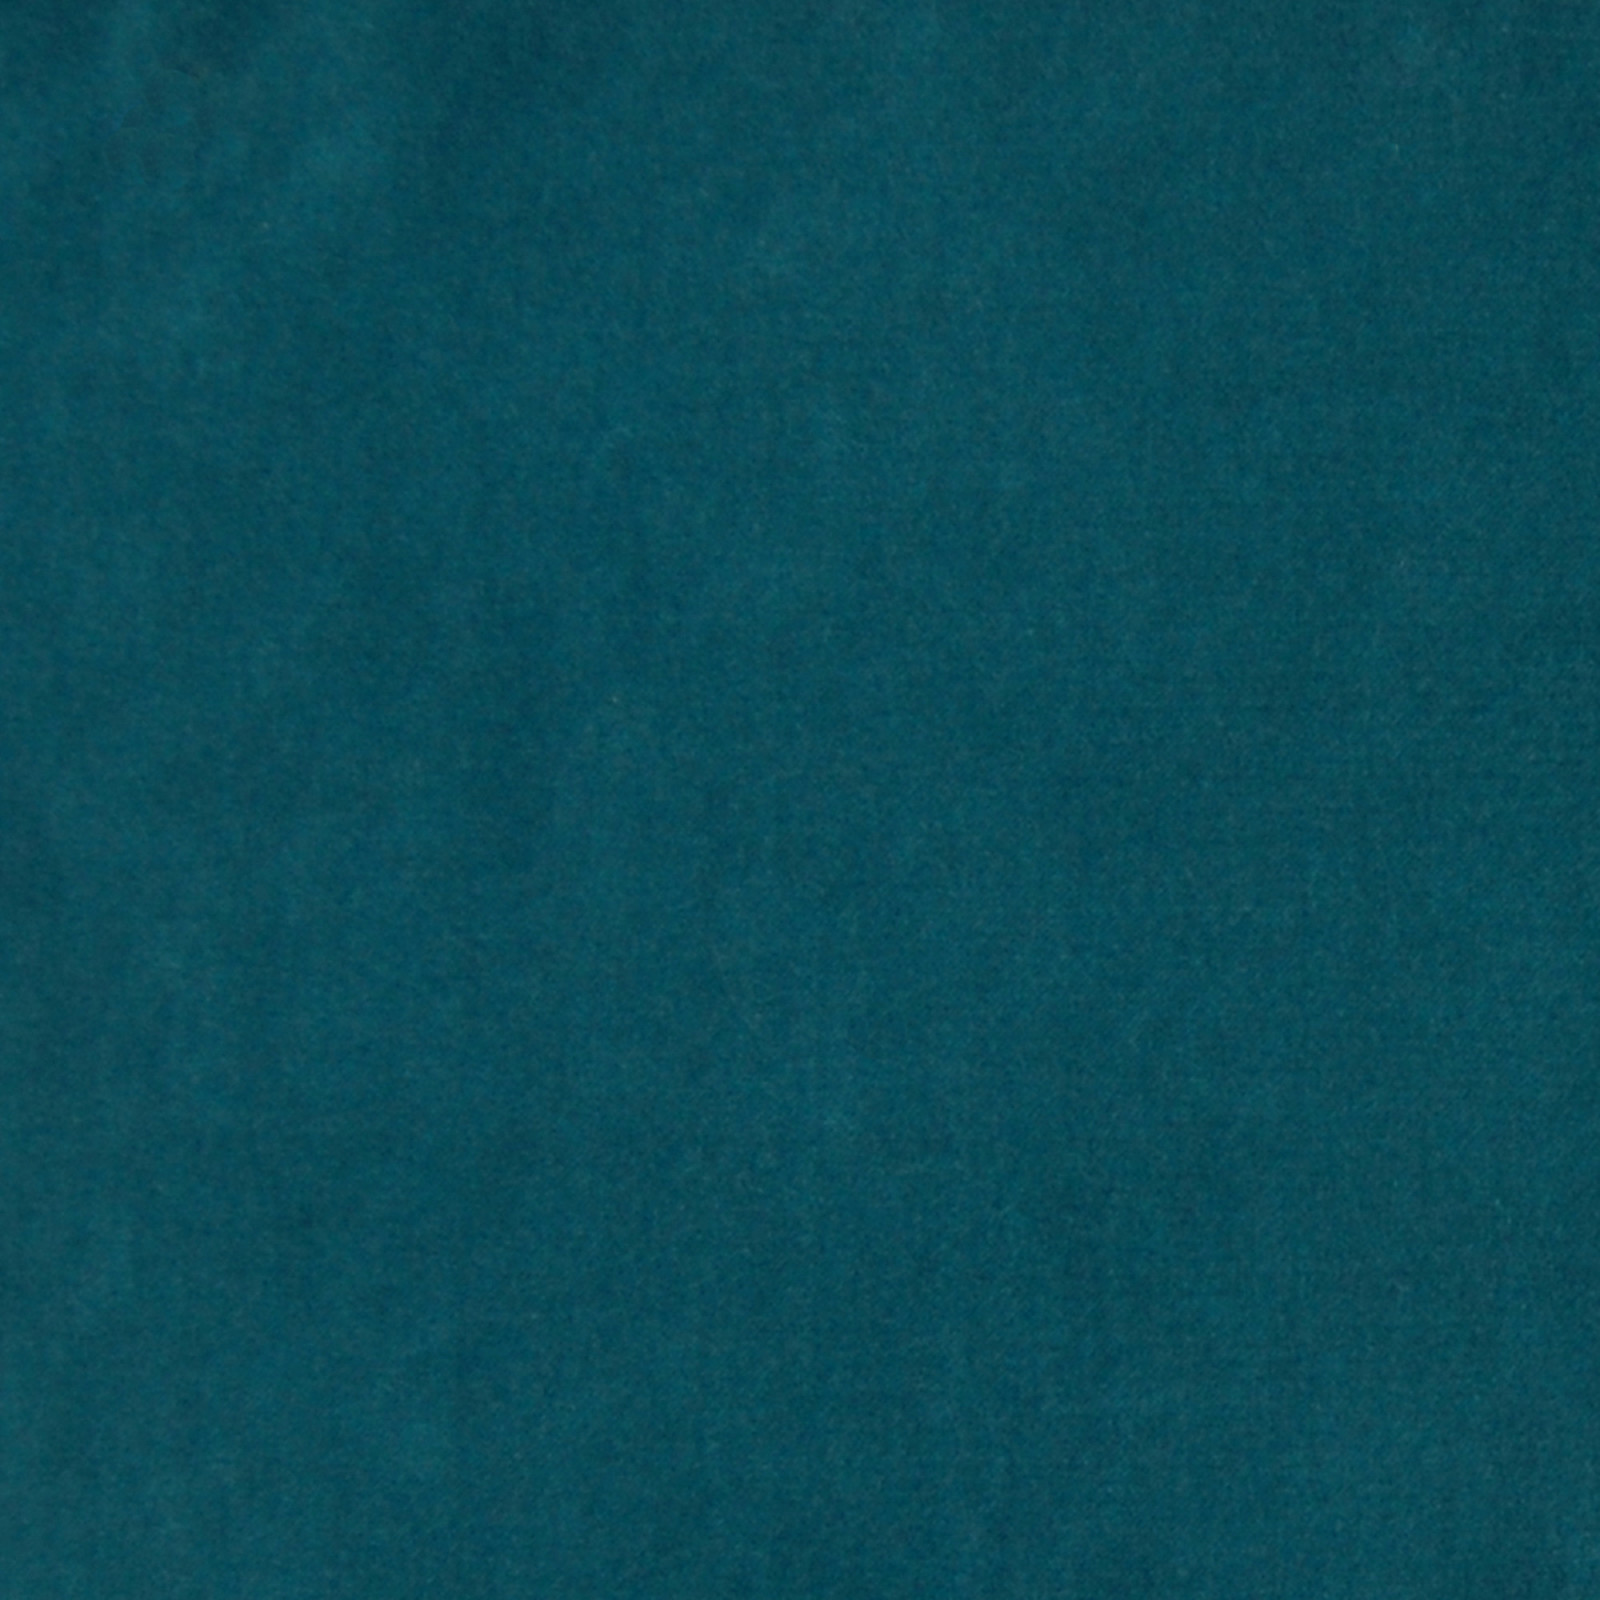 Peacock Blue And Teal Solid Velvet Upholstery Fabric